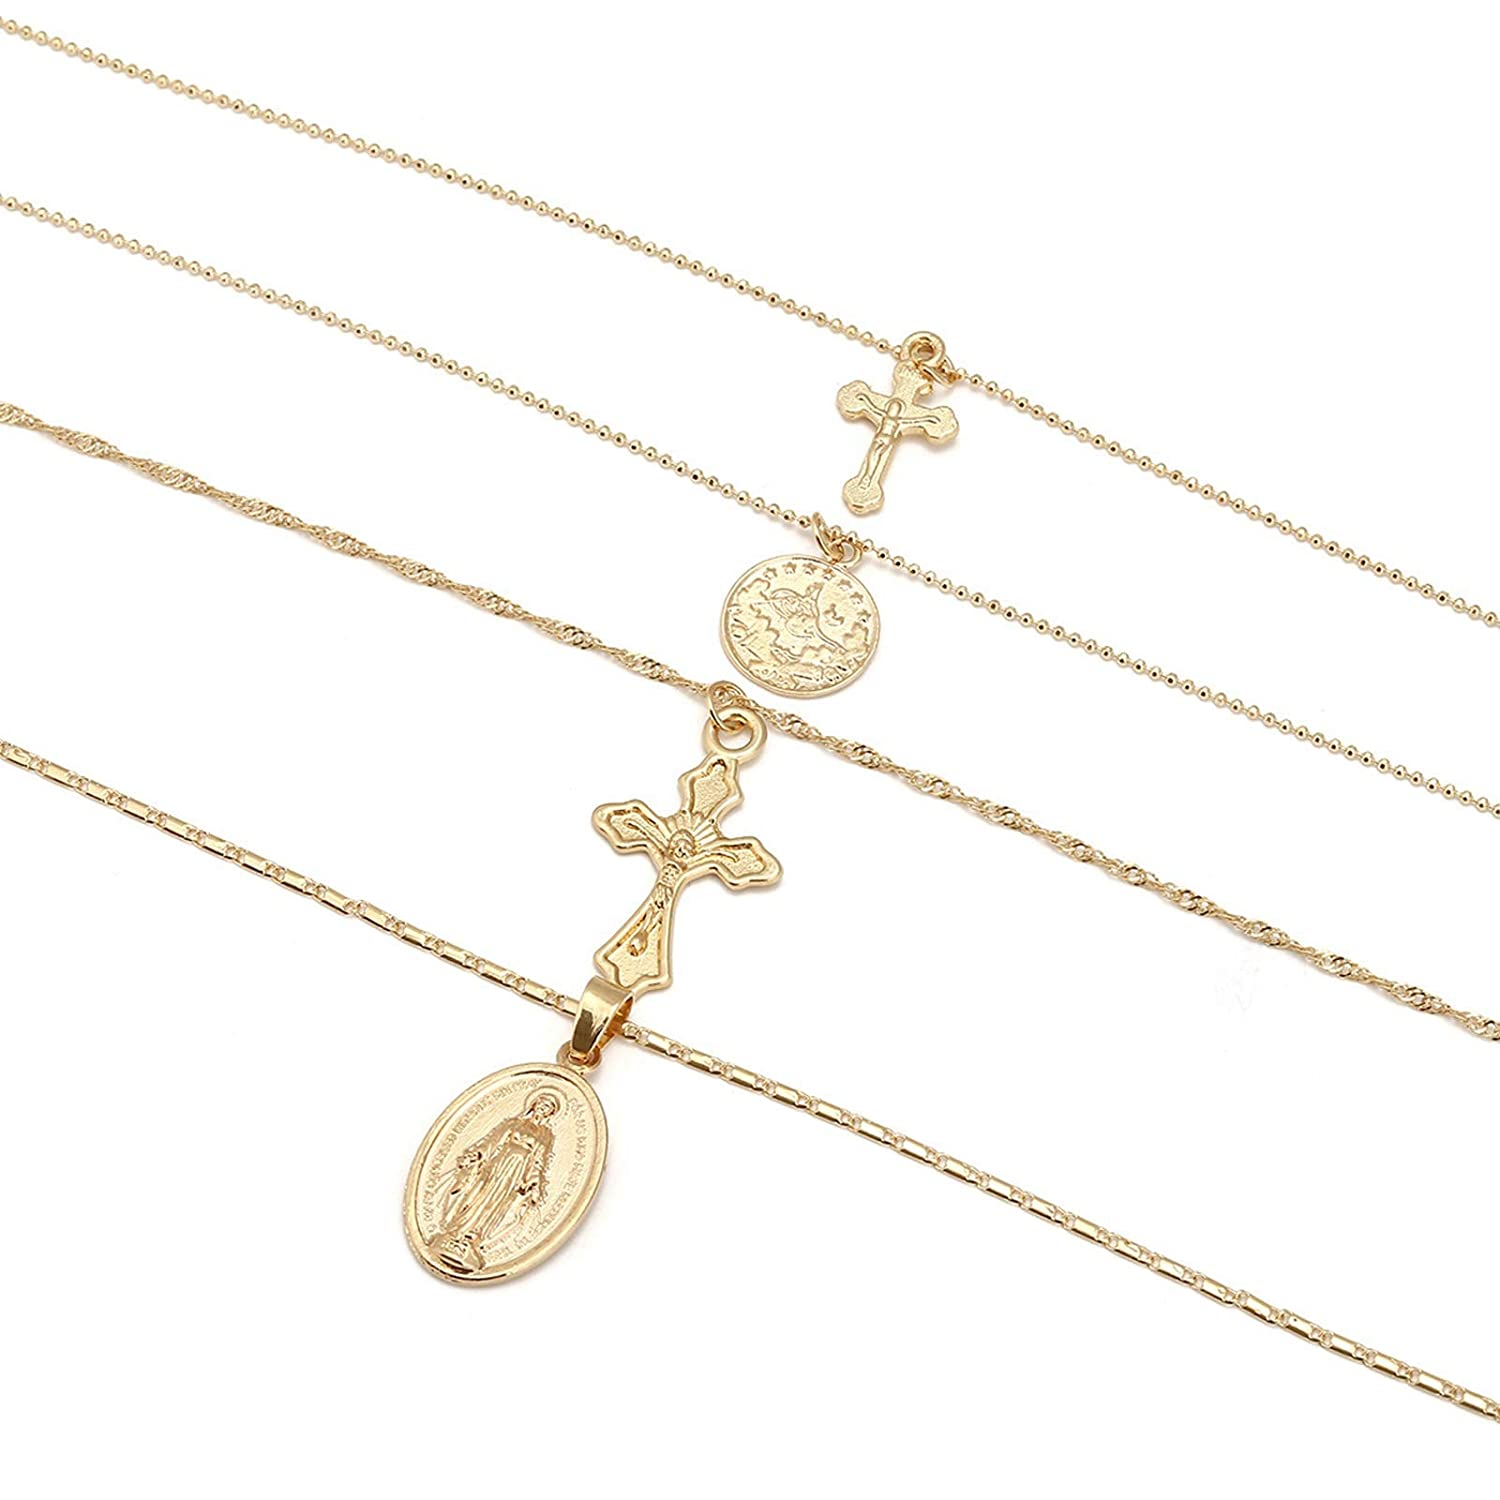 AMDXD Jewelry Chain Necklace Jewelry Virgin Cross Chain Necklaces Vintage Necklace Women